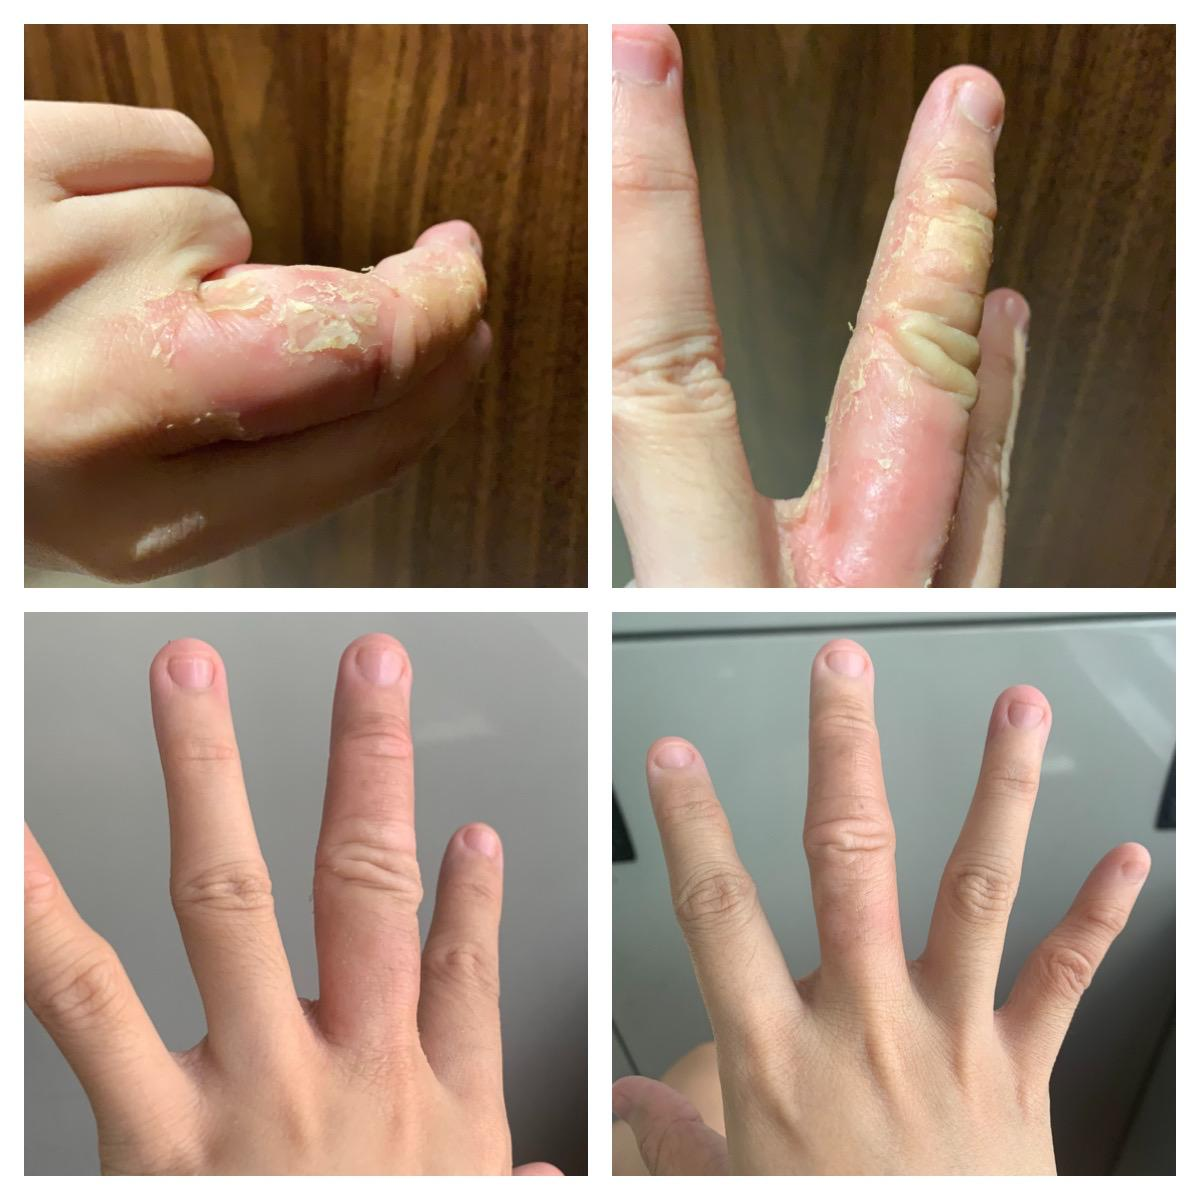 Eczema before and after using Omega369 emu oil and Kakadu Ointment. The bottom image shows that her skin redness has gone down, her skin has stopped flaking and peeling, and swelling appears visibly reduced.